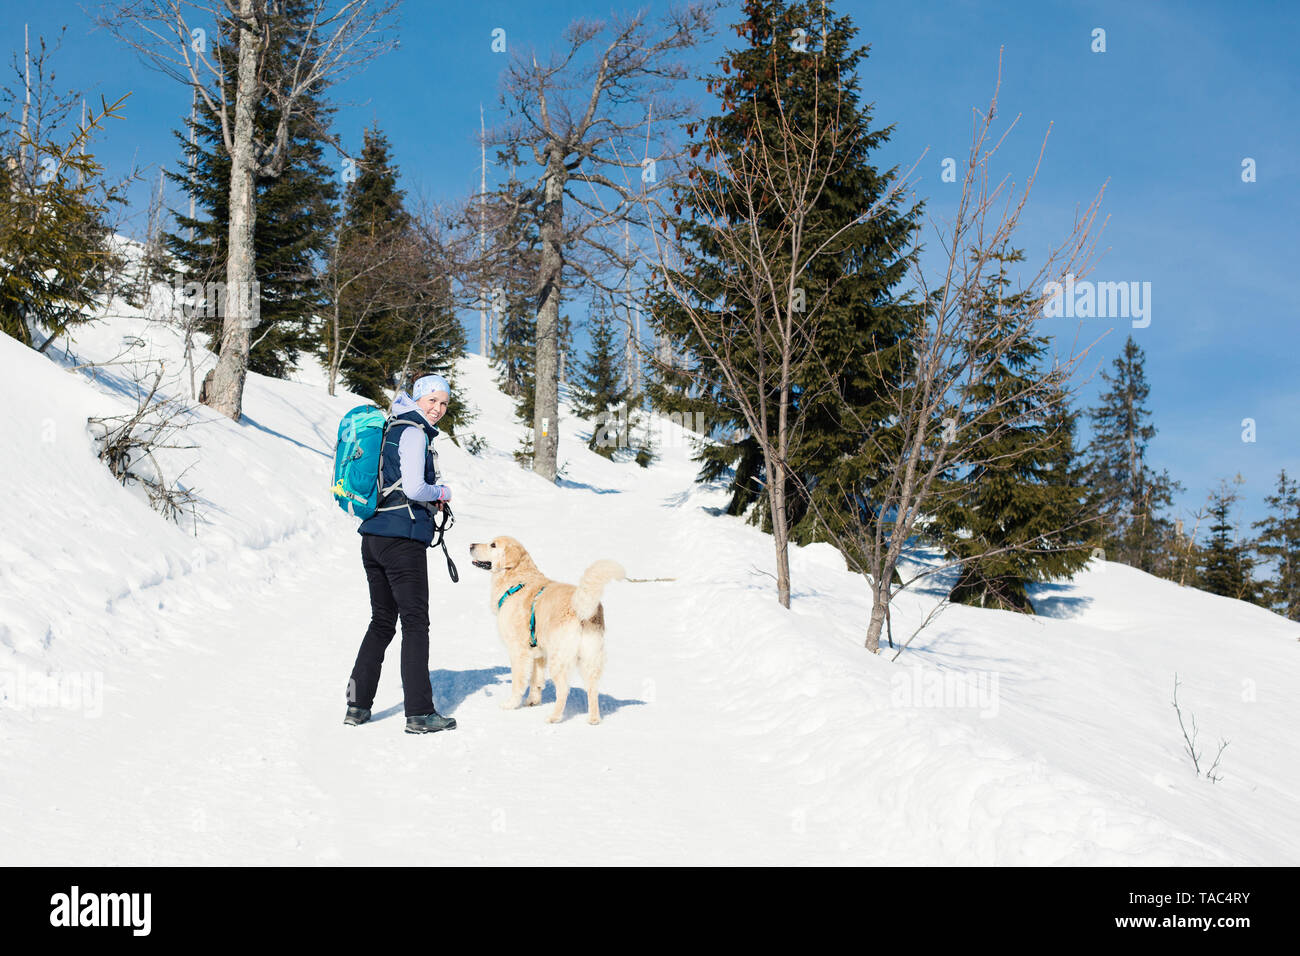 Germany, Bavarian Forest, Lusen, smiling woman with dog hiking in winter - Stock Image